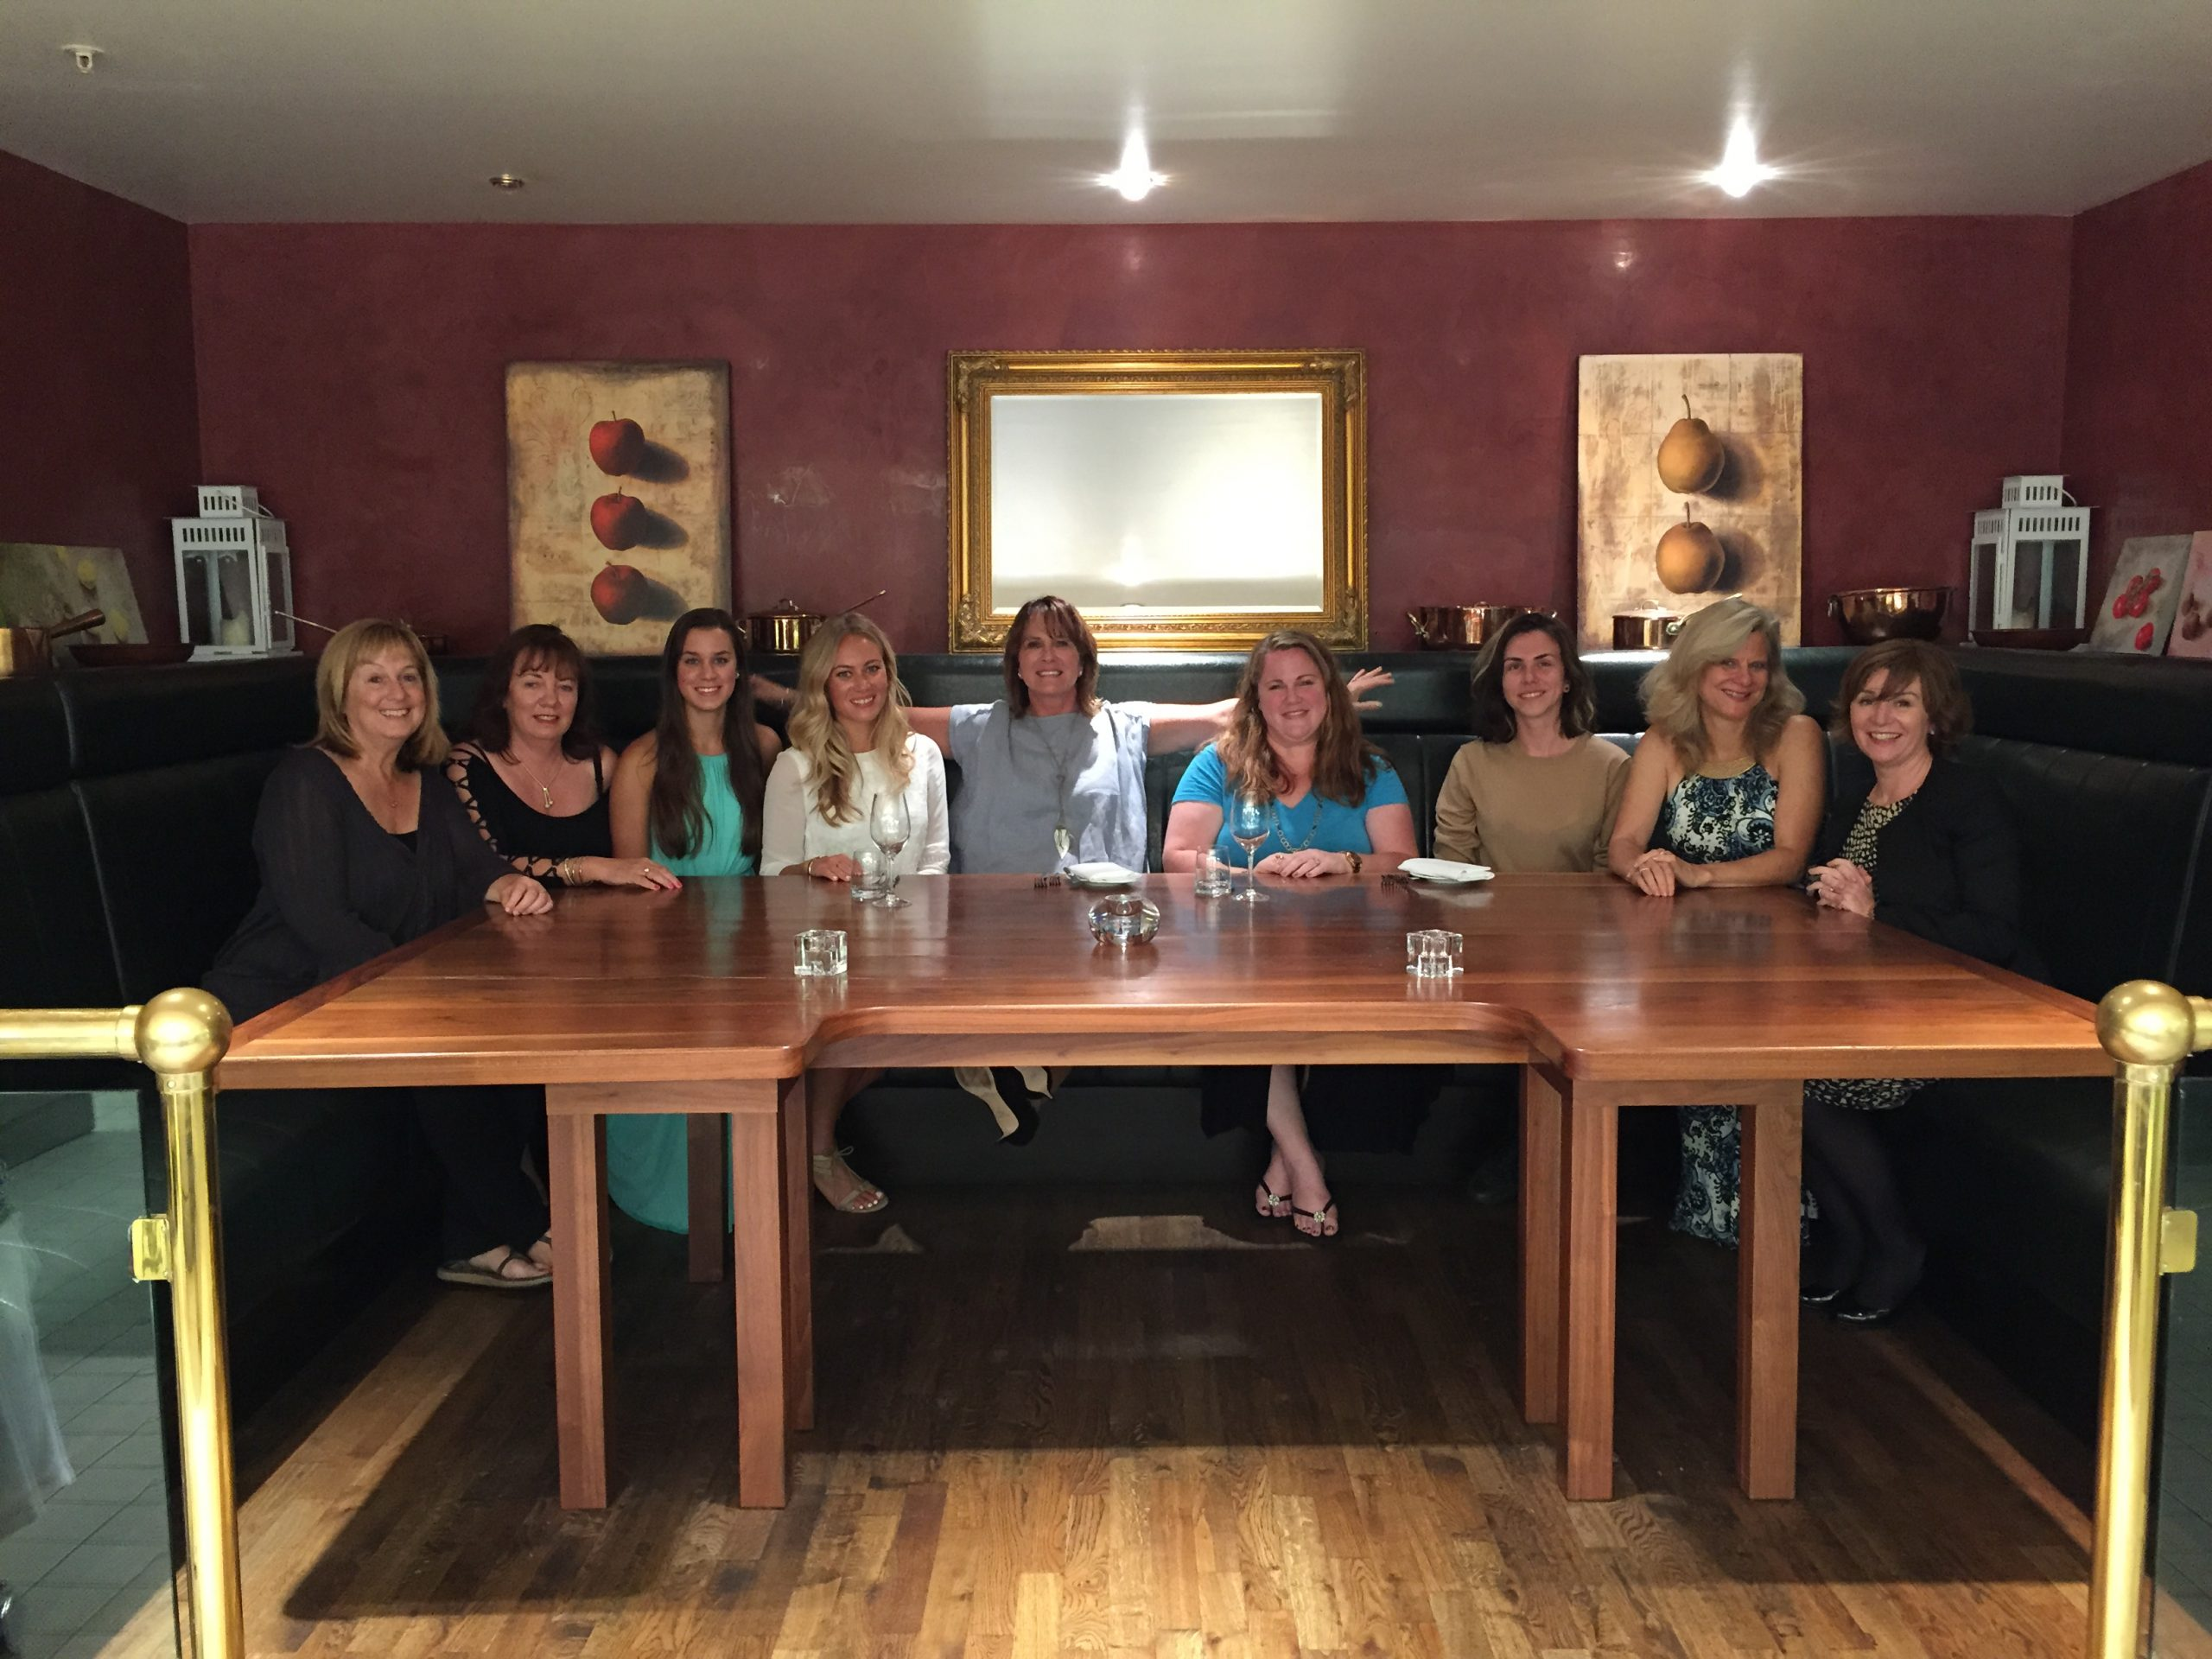 Our August group at the Tasting Table in the kitchen at Sika restaurant at The Powerscourt Hotel